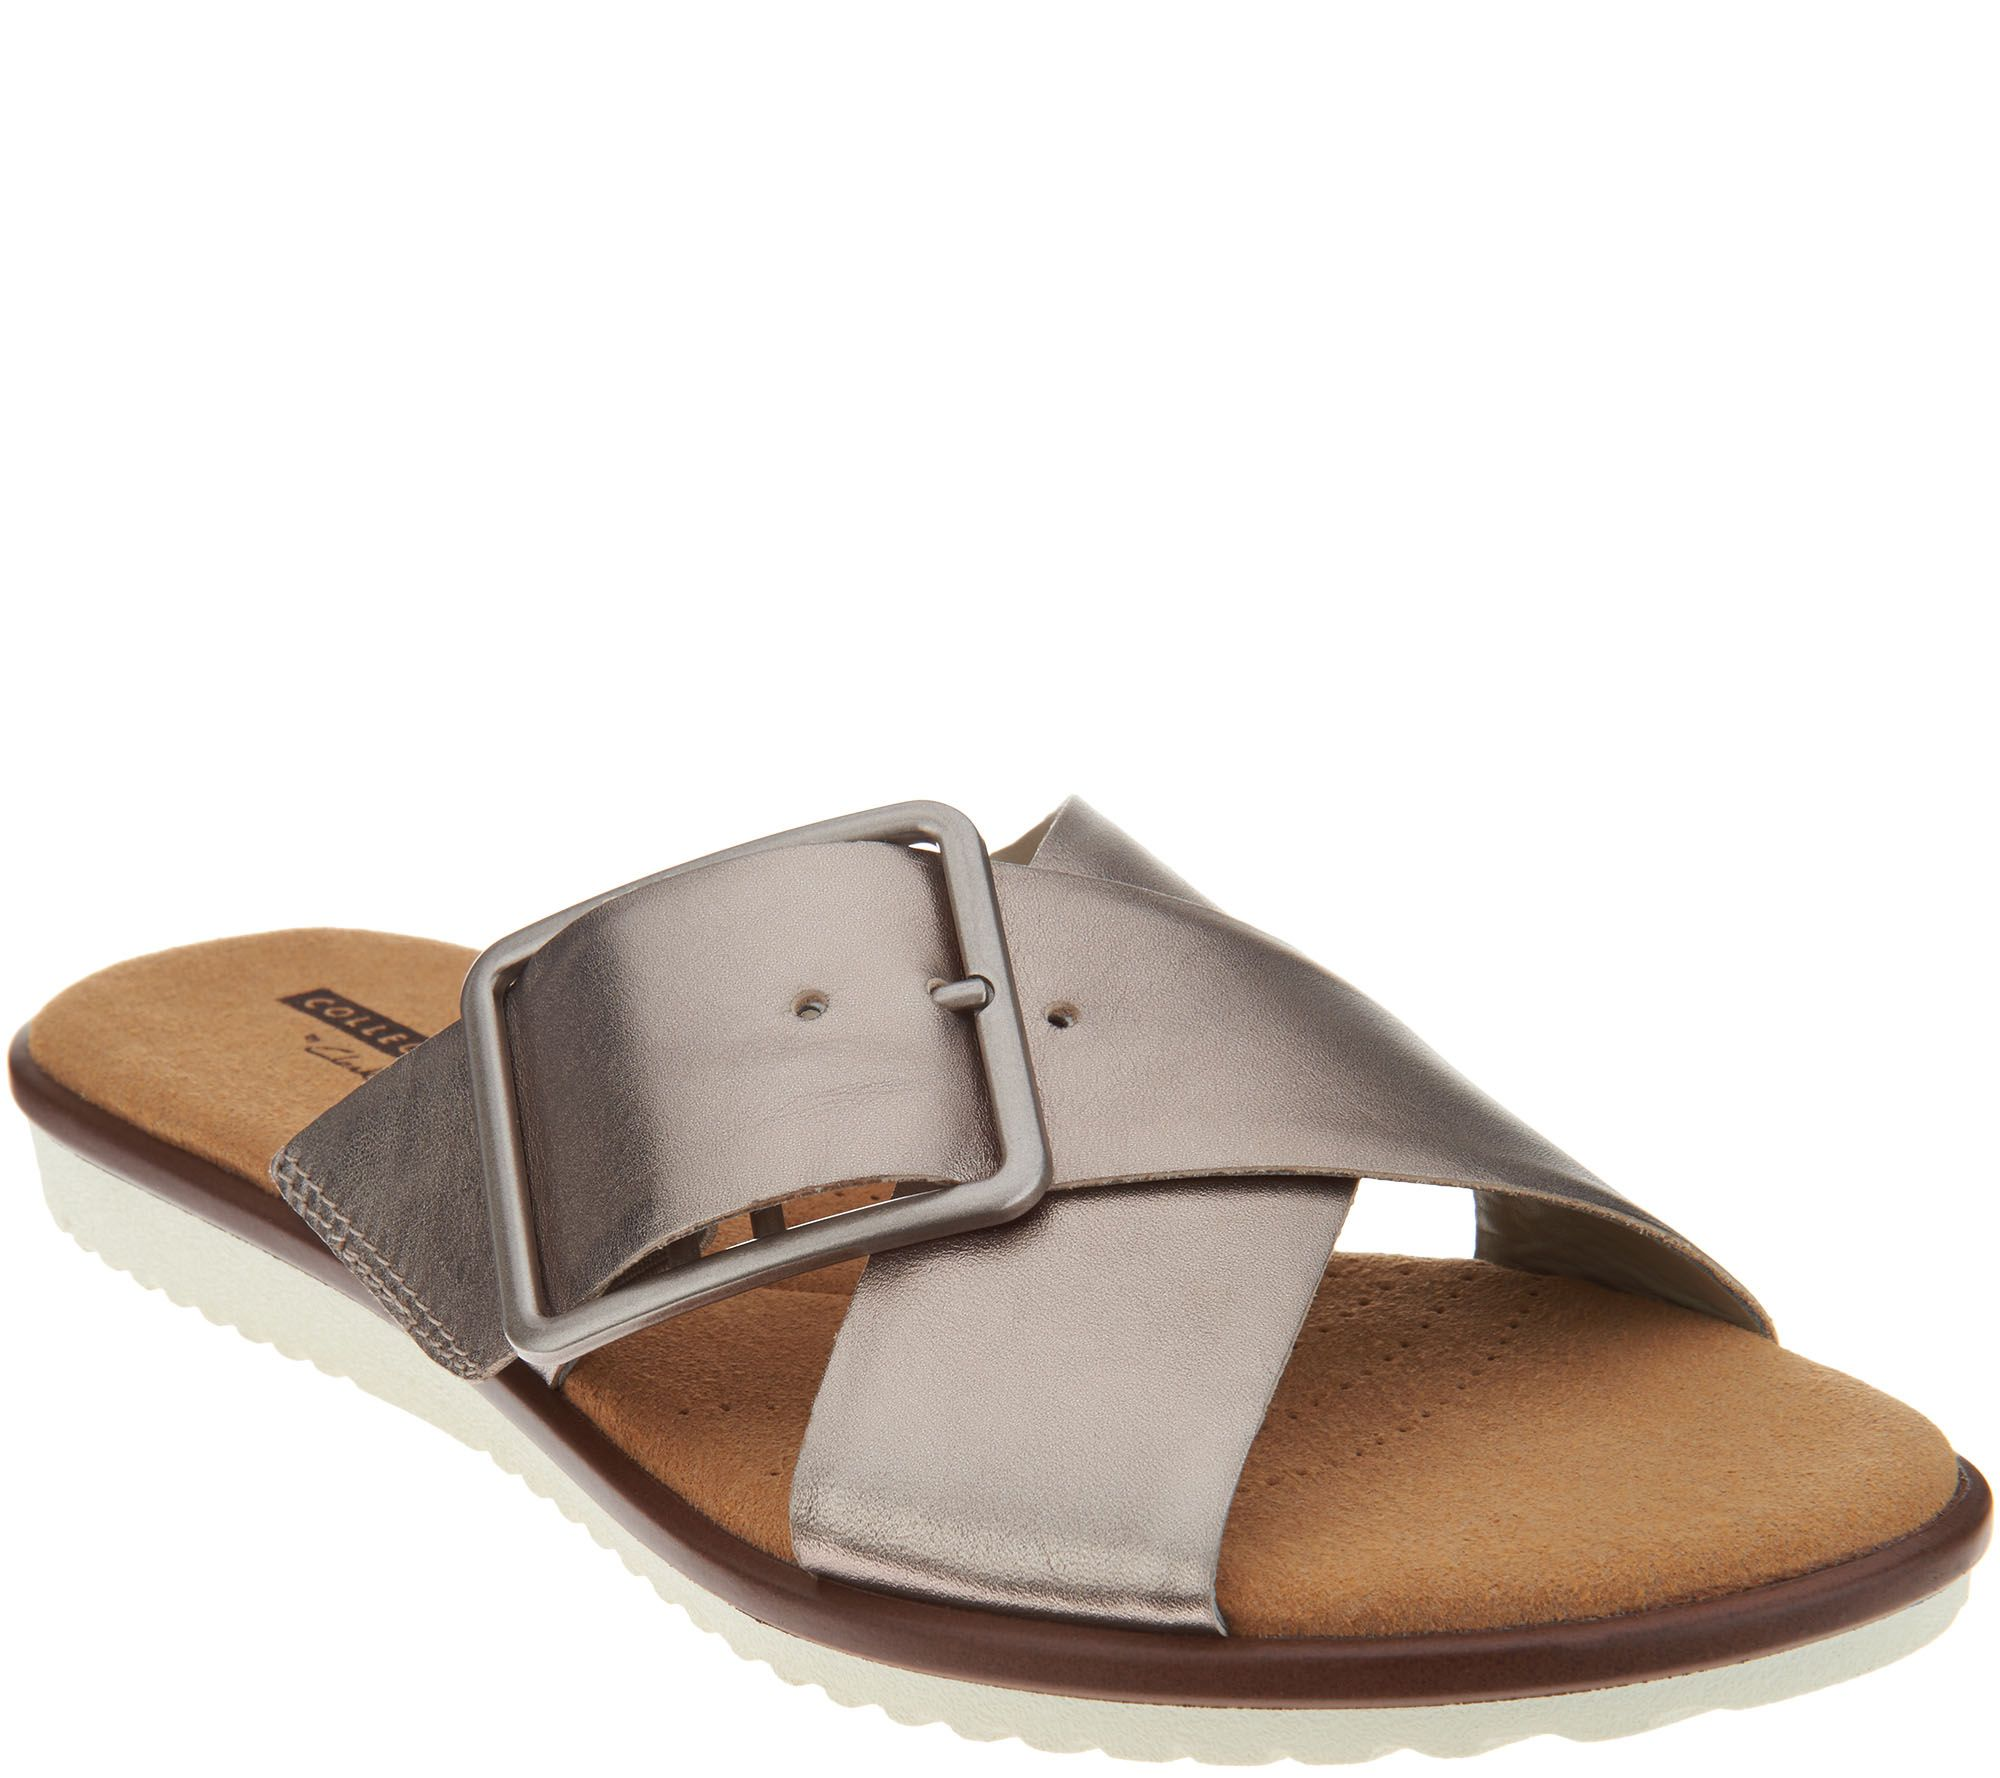 12d2914be301 Clarks Leather Cross Band Buckle Slides - Kele Heather - Page 1 — QVC.com